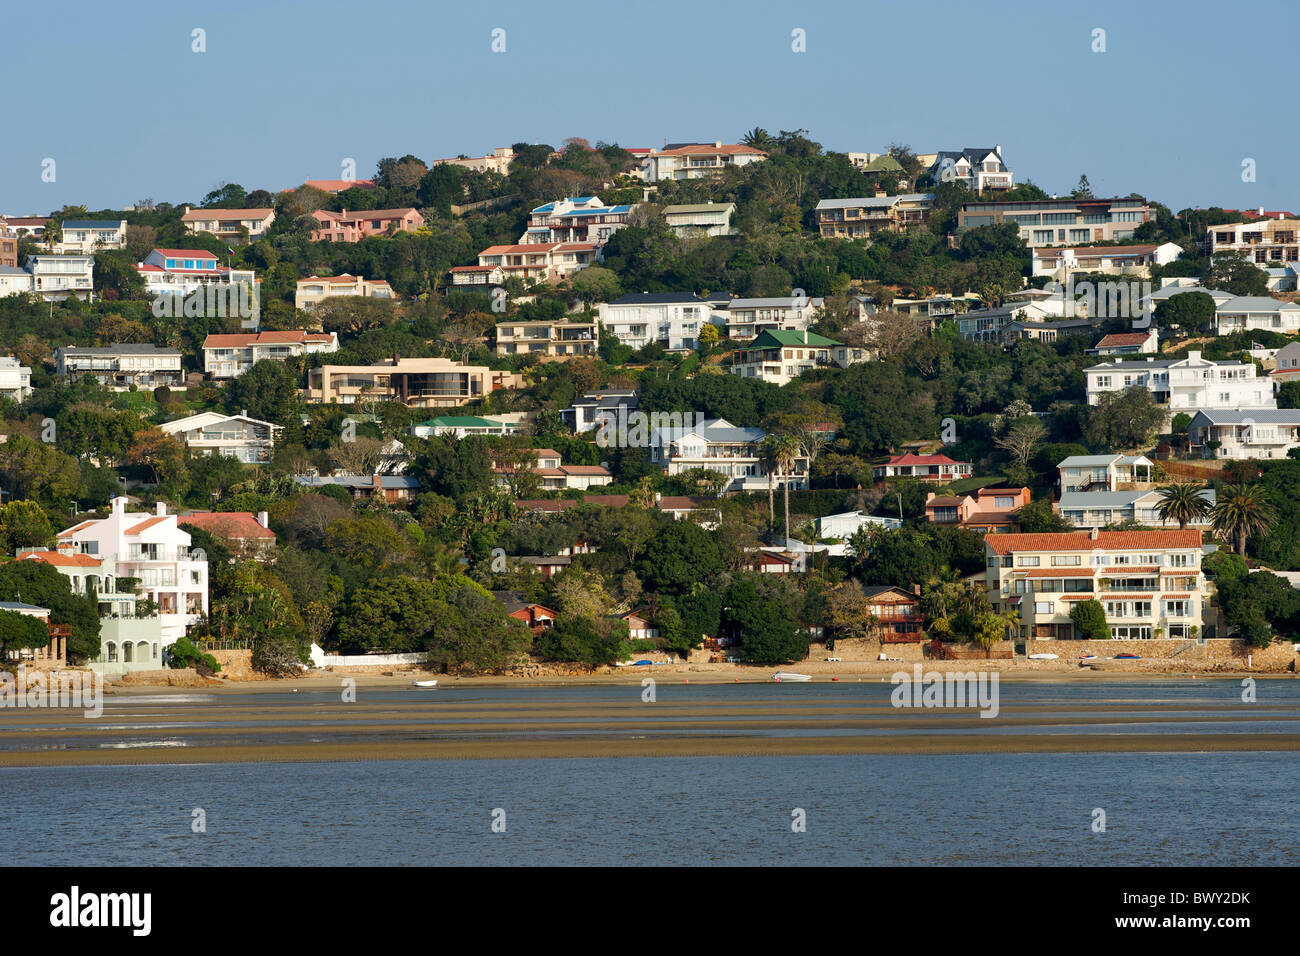 Houses on the bluff of the northern side of the Knysna Heads on the Garden Route in South Africa. - Stock Image